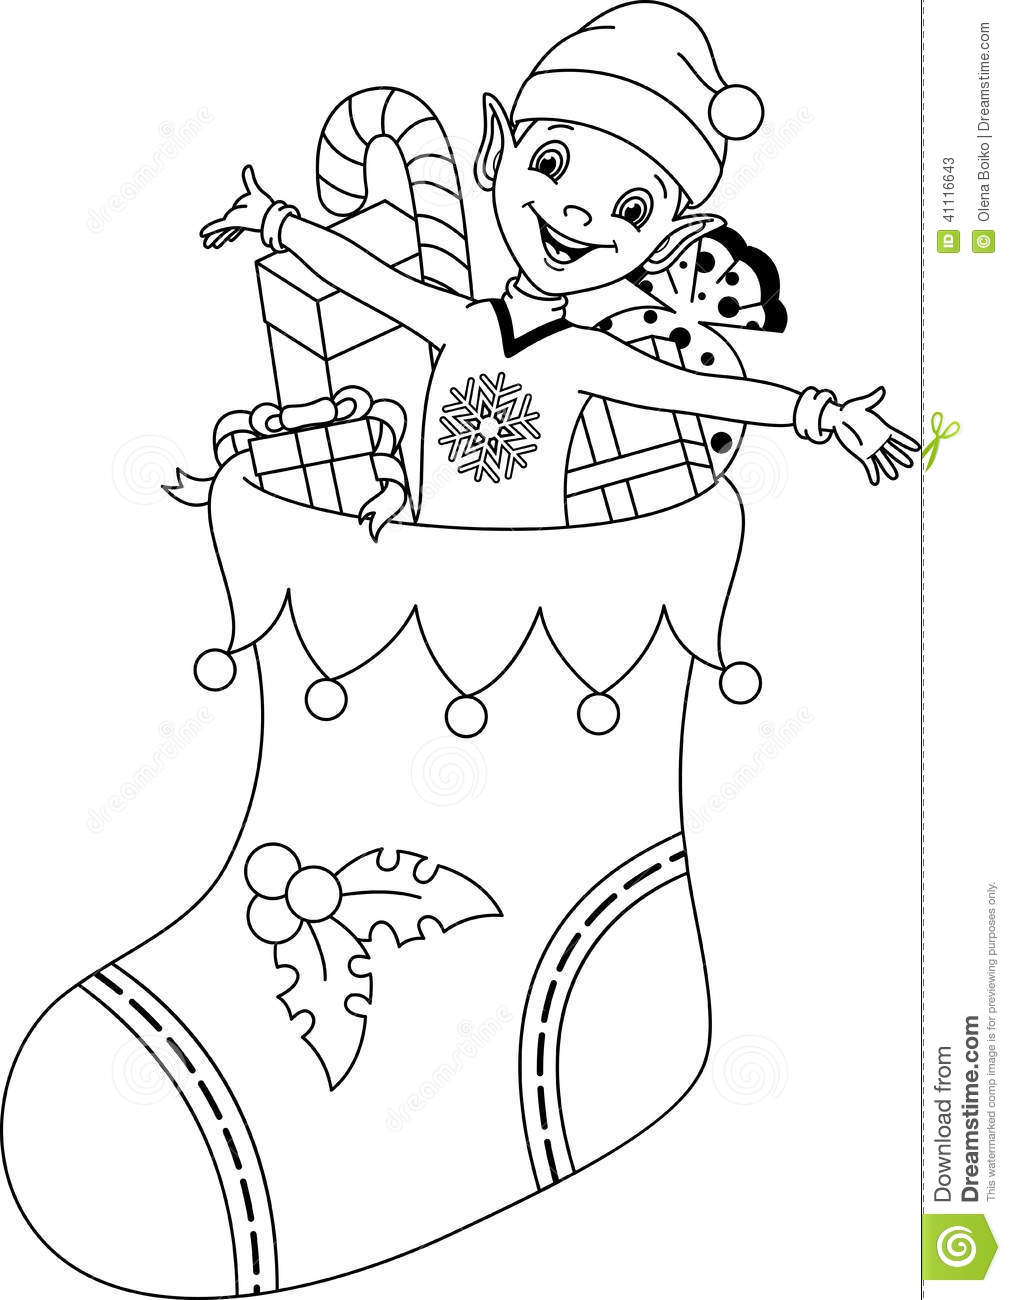 buddy the elf coloring pages - elf coloring pages getcoloringpagescom sketch coloring page